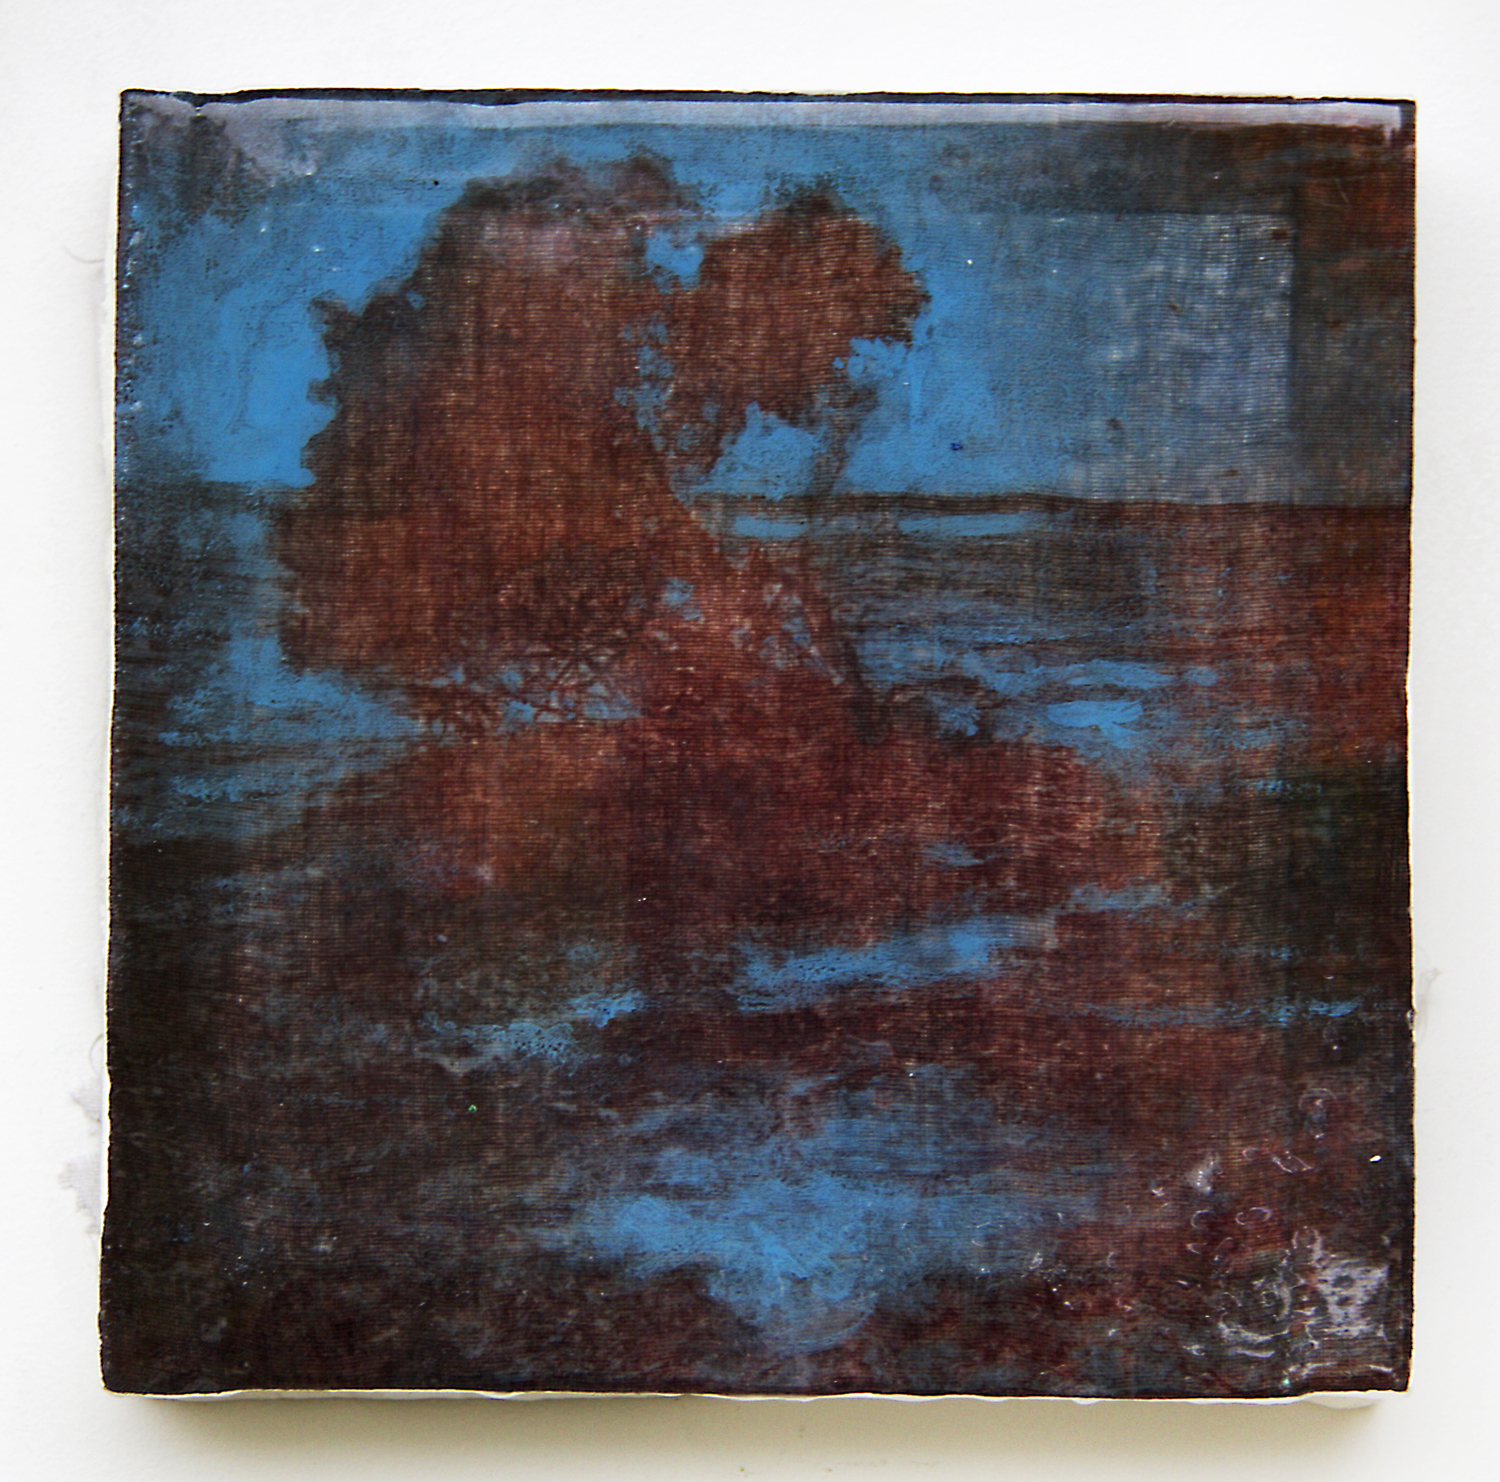 "'Blue Tree, Indonesia' (2016) Inkodye on stretched cloth, resin, and wax, 10"" x 10"""